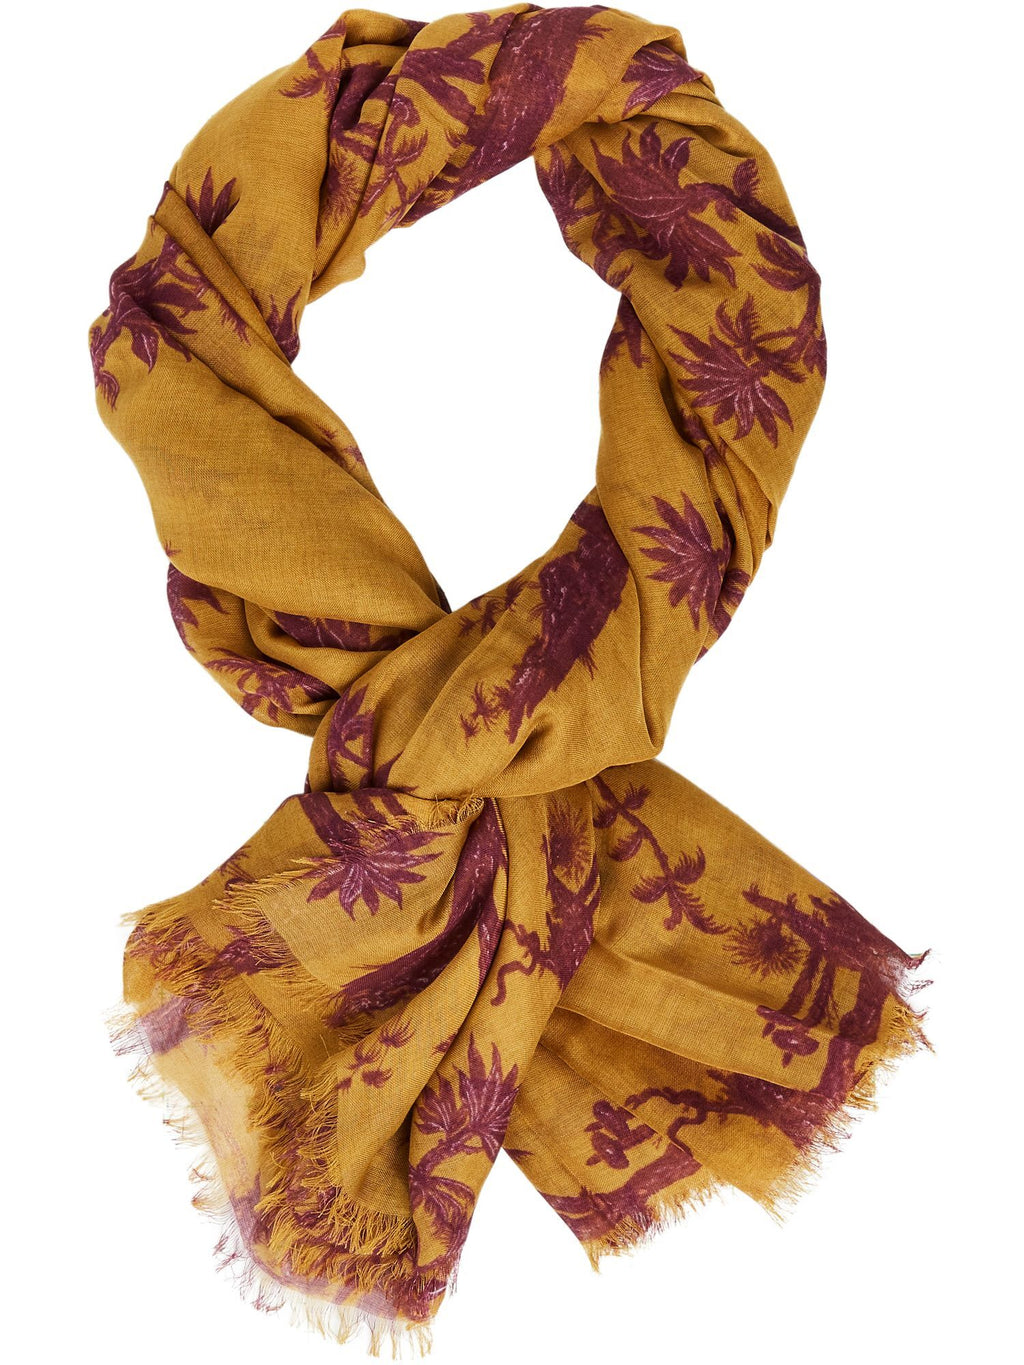 Buy Light Printed Scarf from SCOTCH AND SODA at PAYA boutique